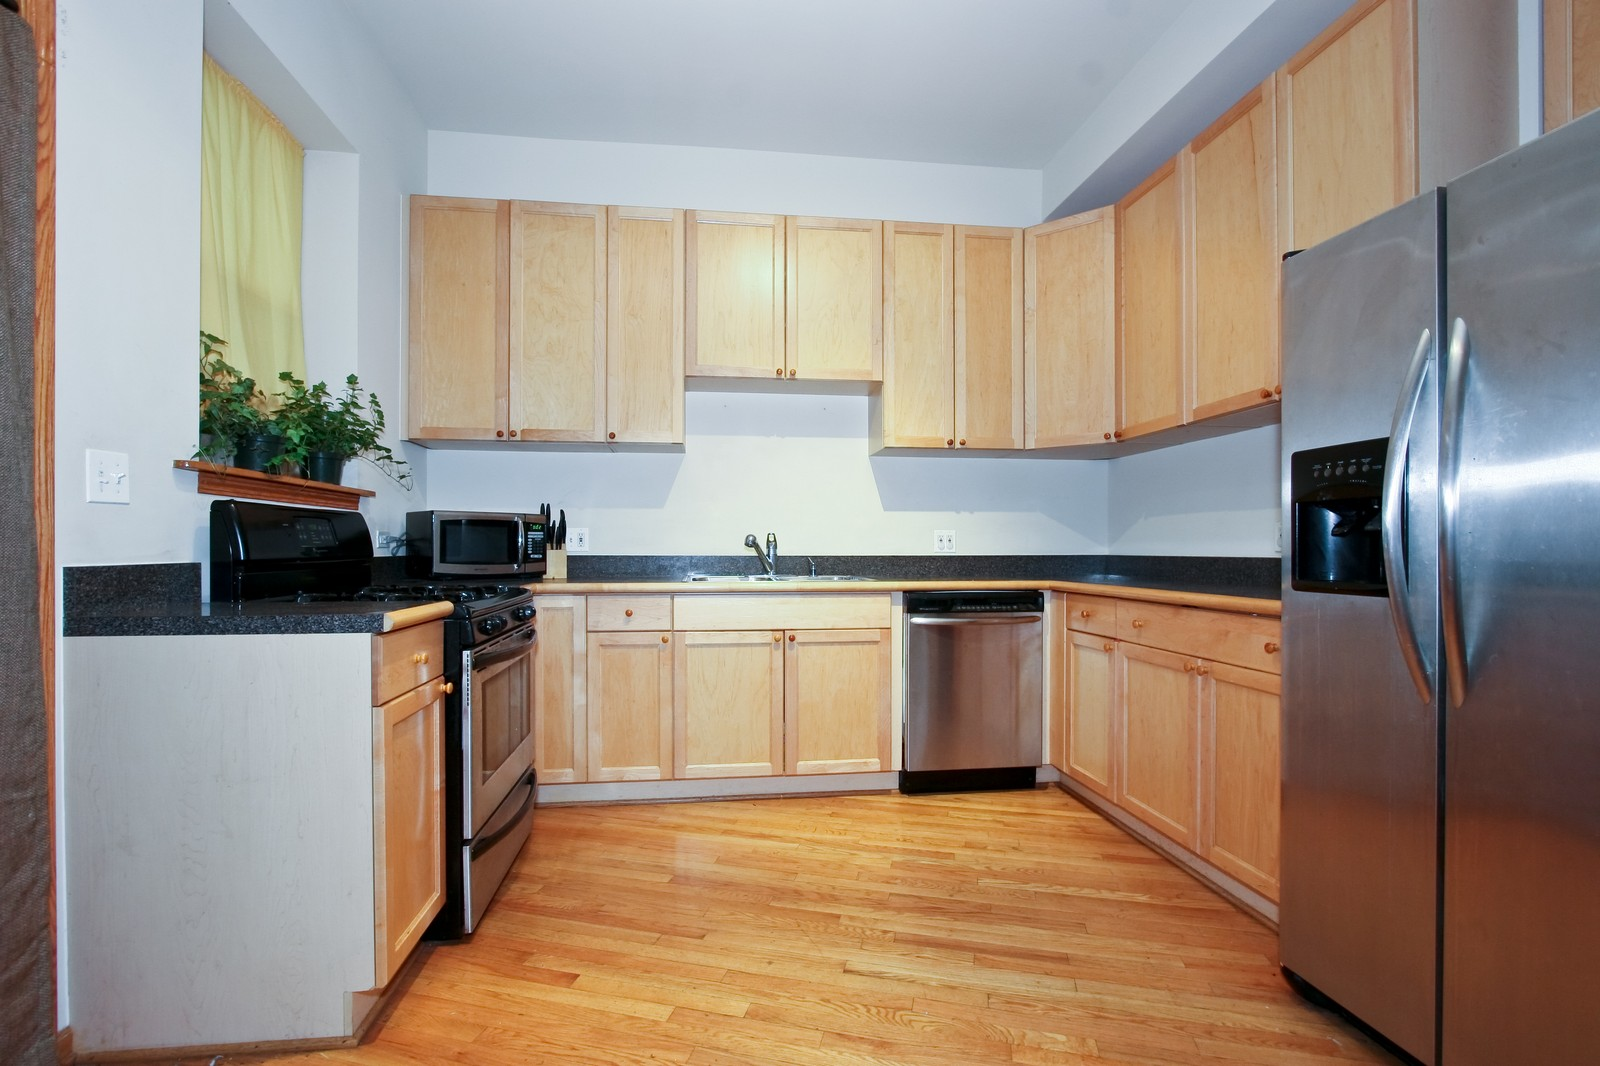 Real Estate Photography - 6415 S Minerva Ave, Unit 2NW, Chicago, IL, 60637 - Kitchen